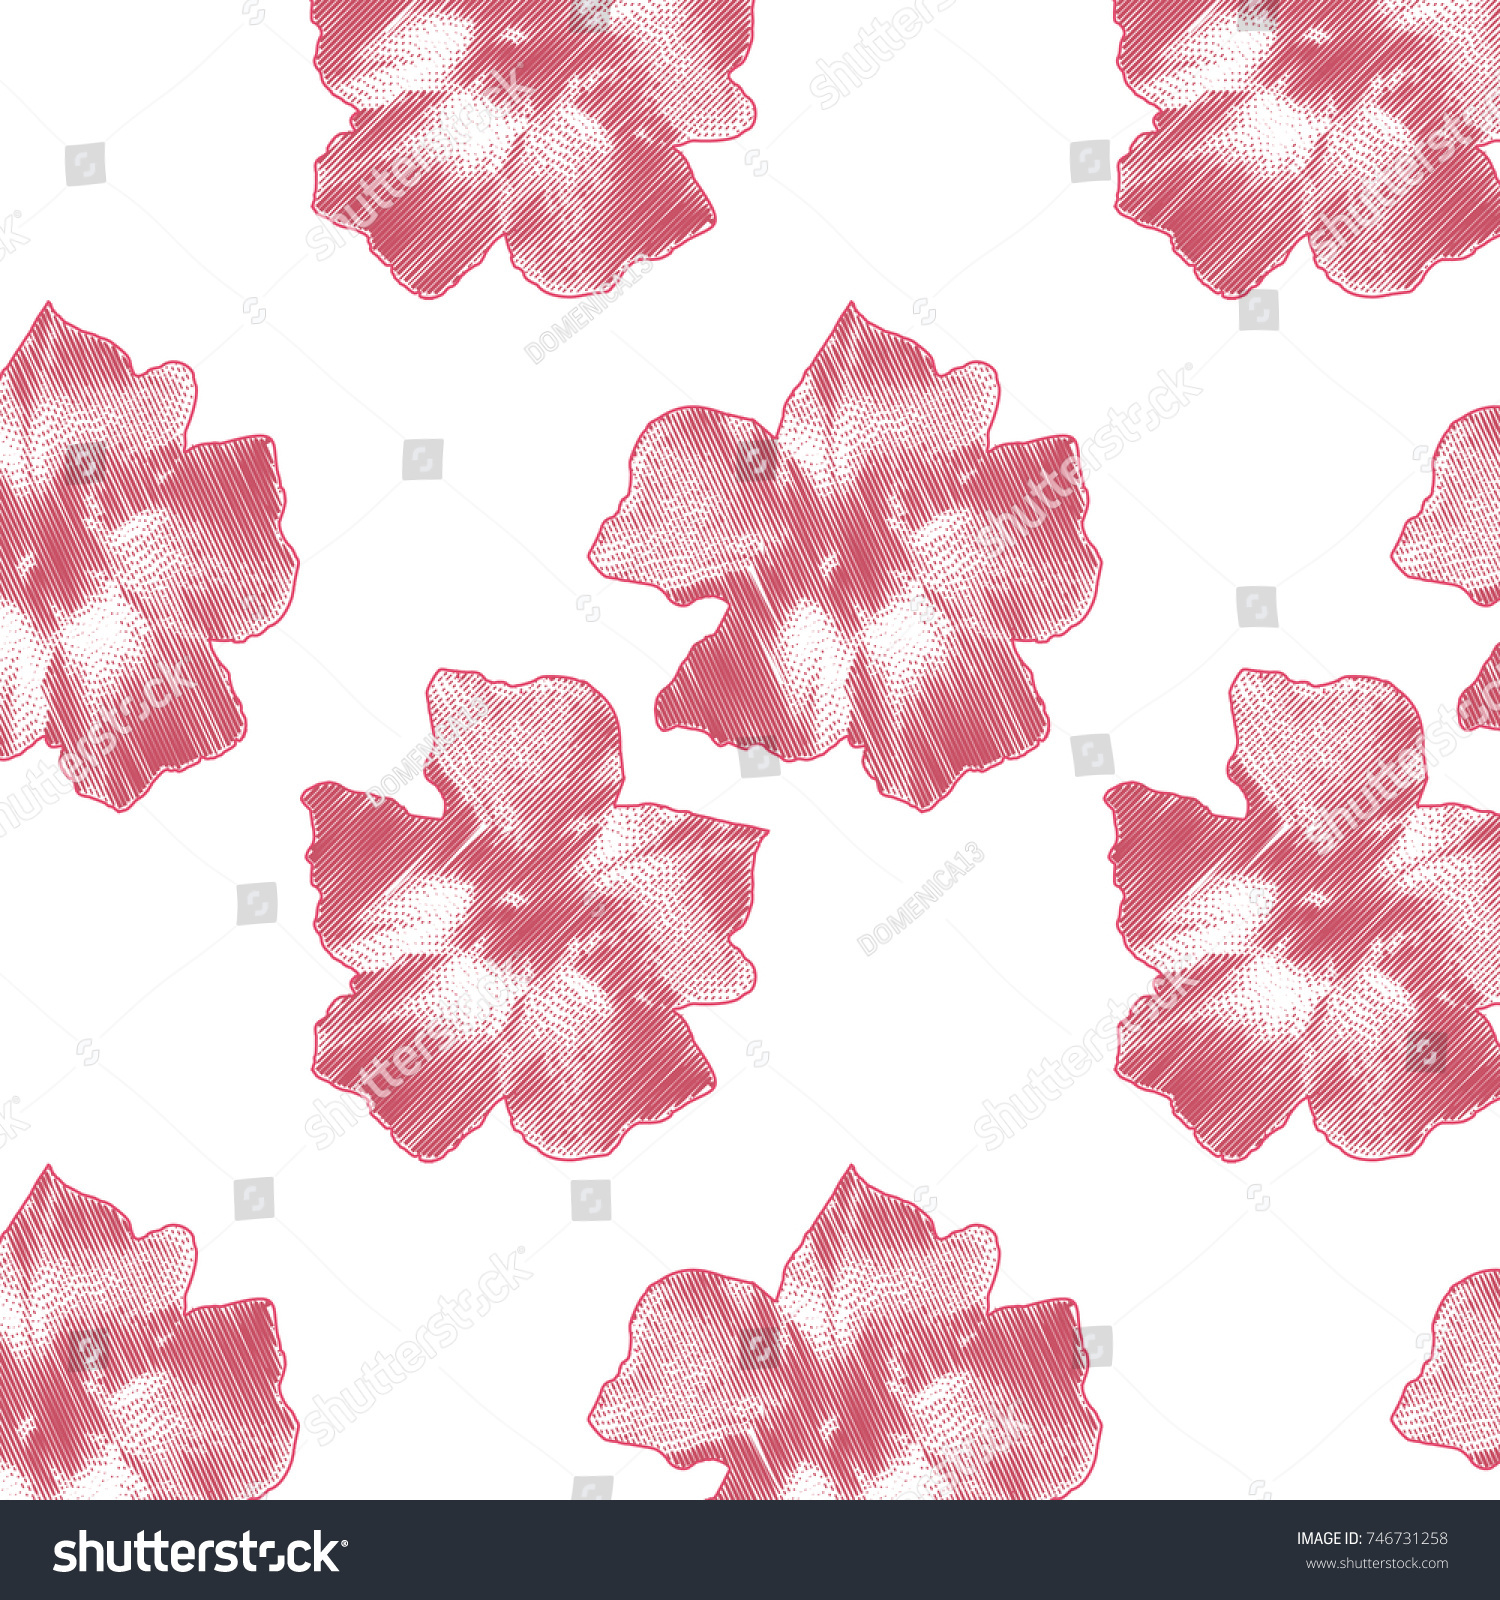 Delicate Pink Flowers On White Background Stock Illustration